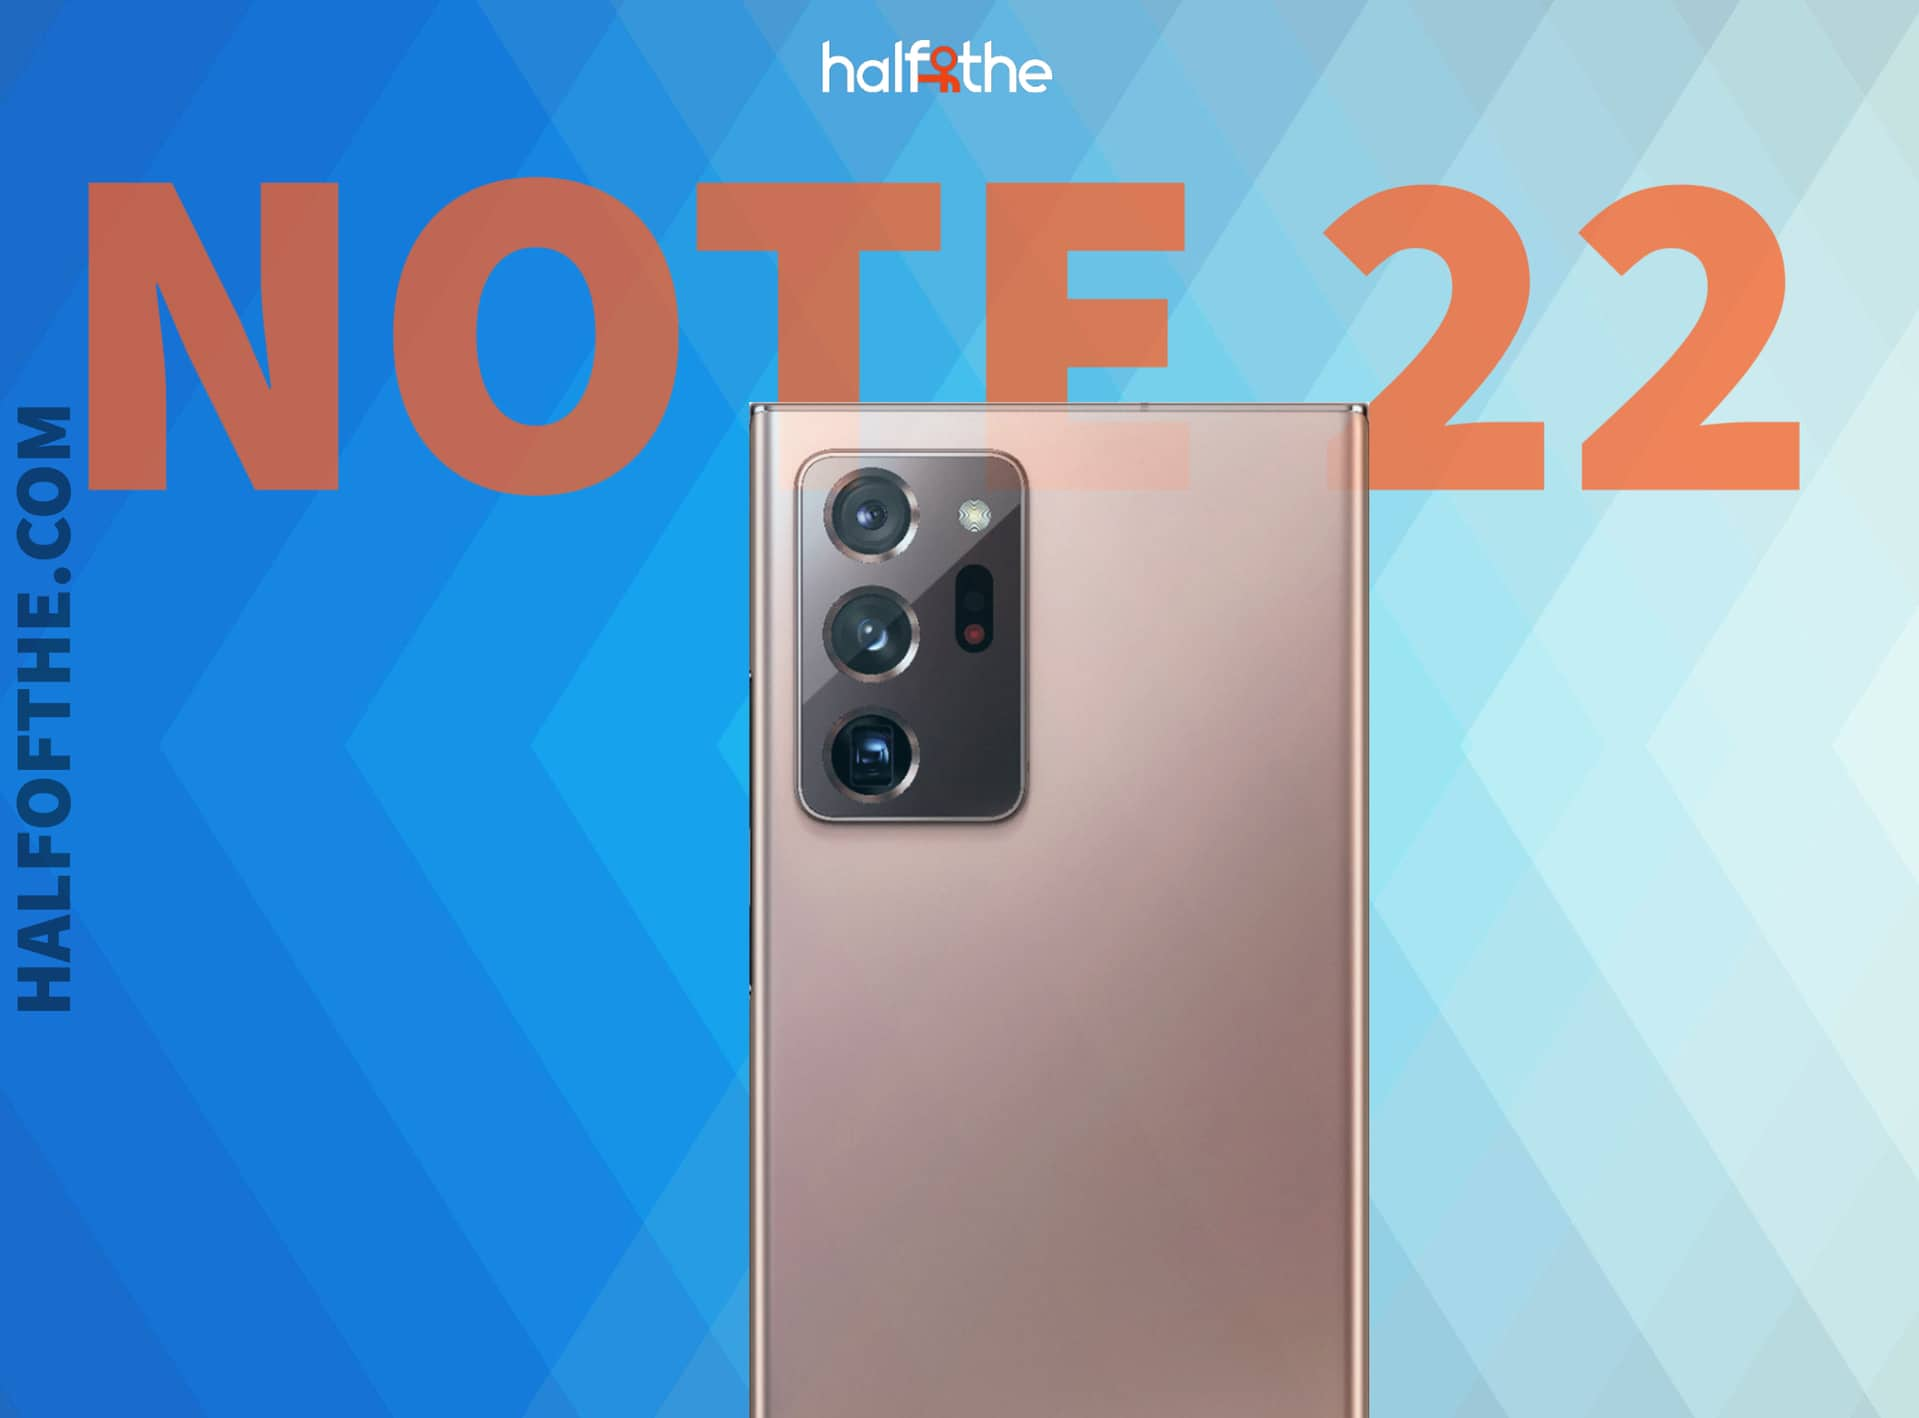 Samsung Galaxy Note 22 series rumored to launch alongside S22